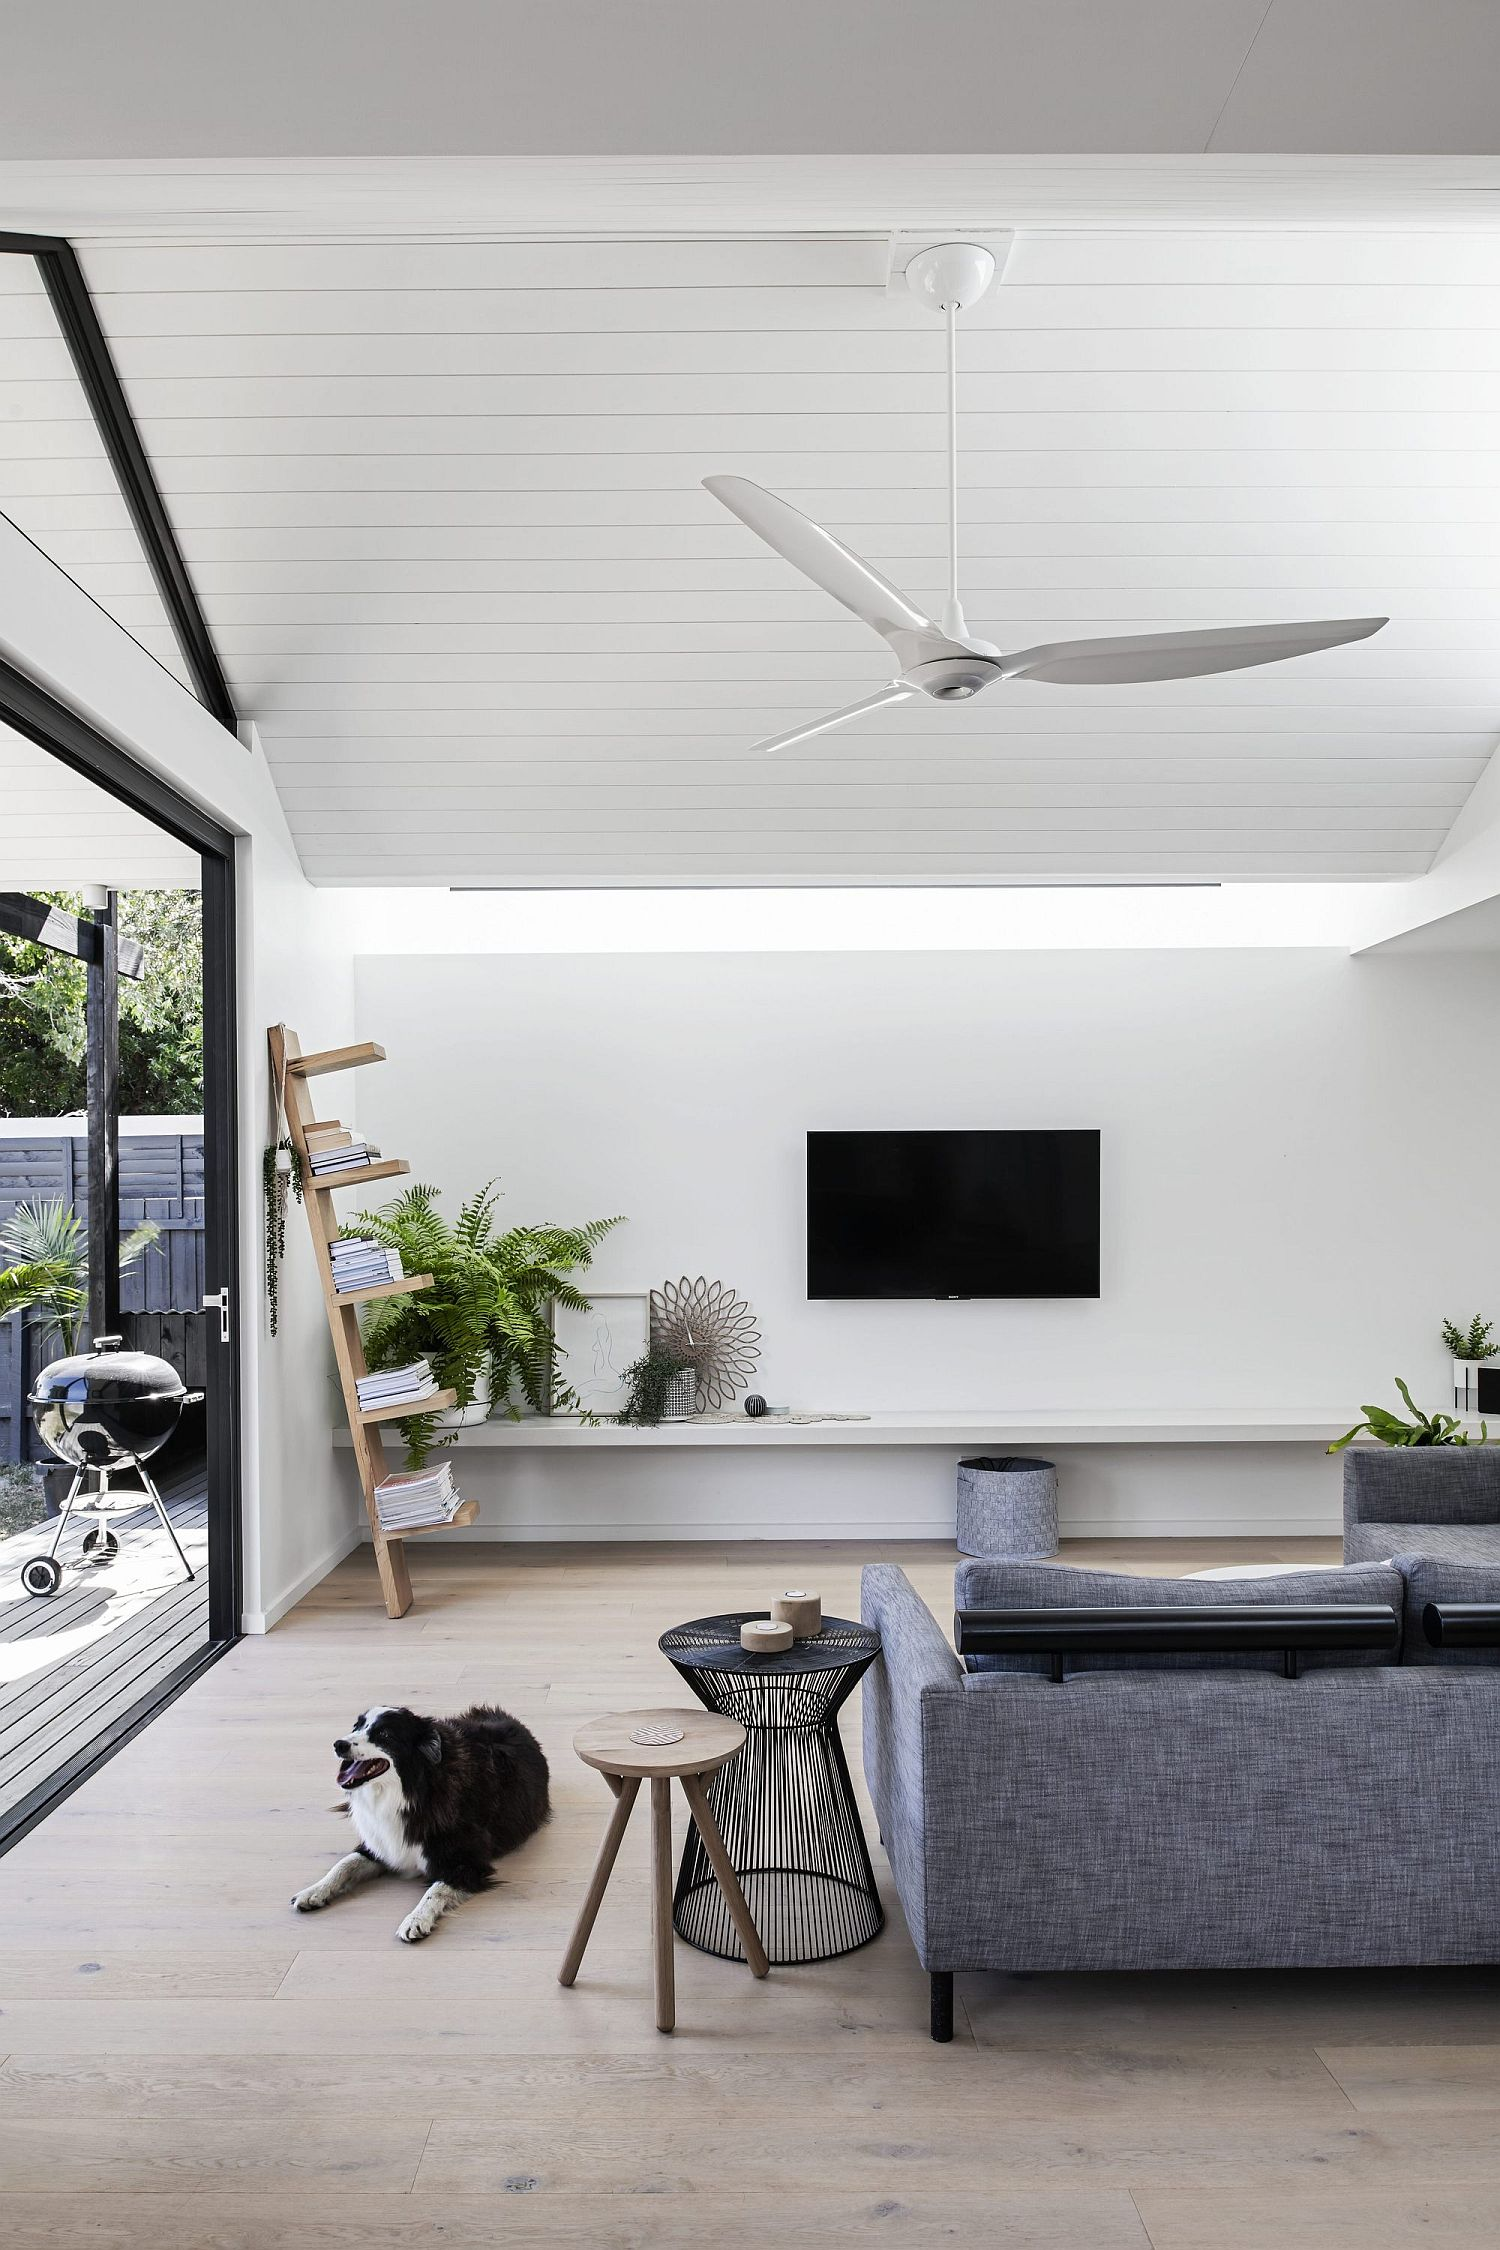 All-white living area of the new extension with a gray couch